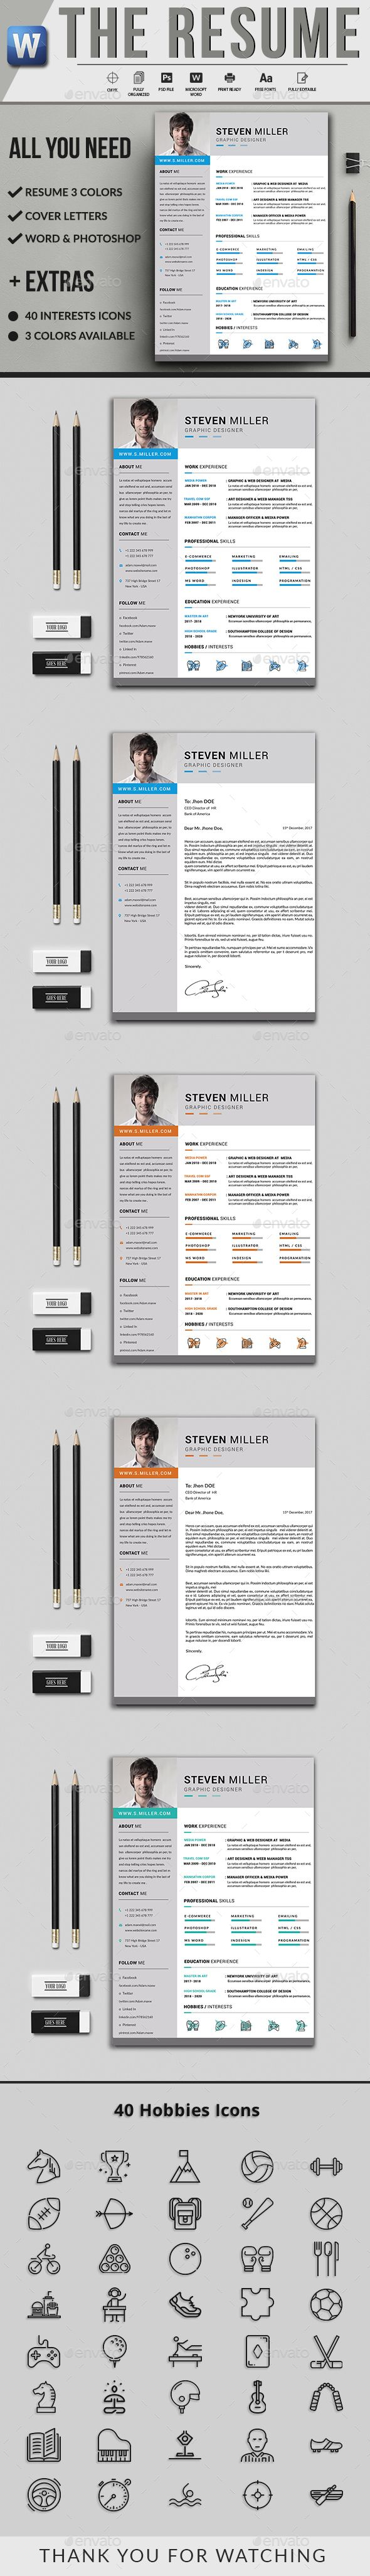 CV by Unionmedia Resume ?Resume? is the super clean, modern and professional resume cv template to help you land that great job. The flexible page